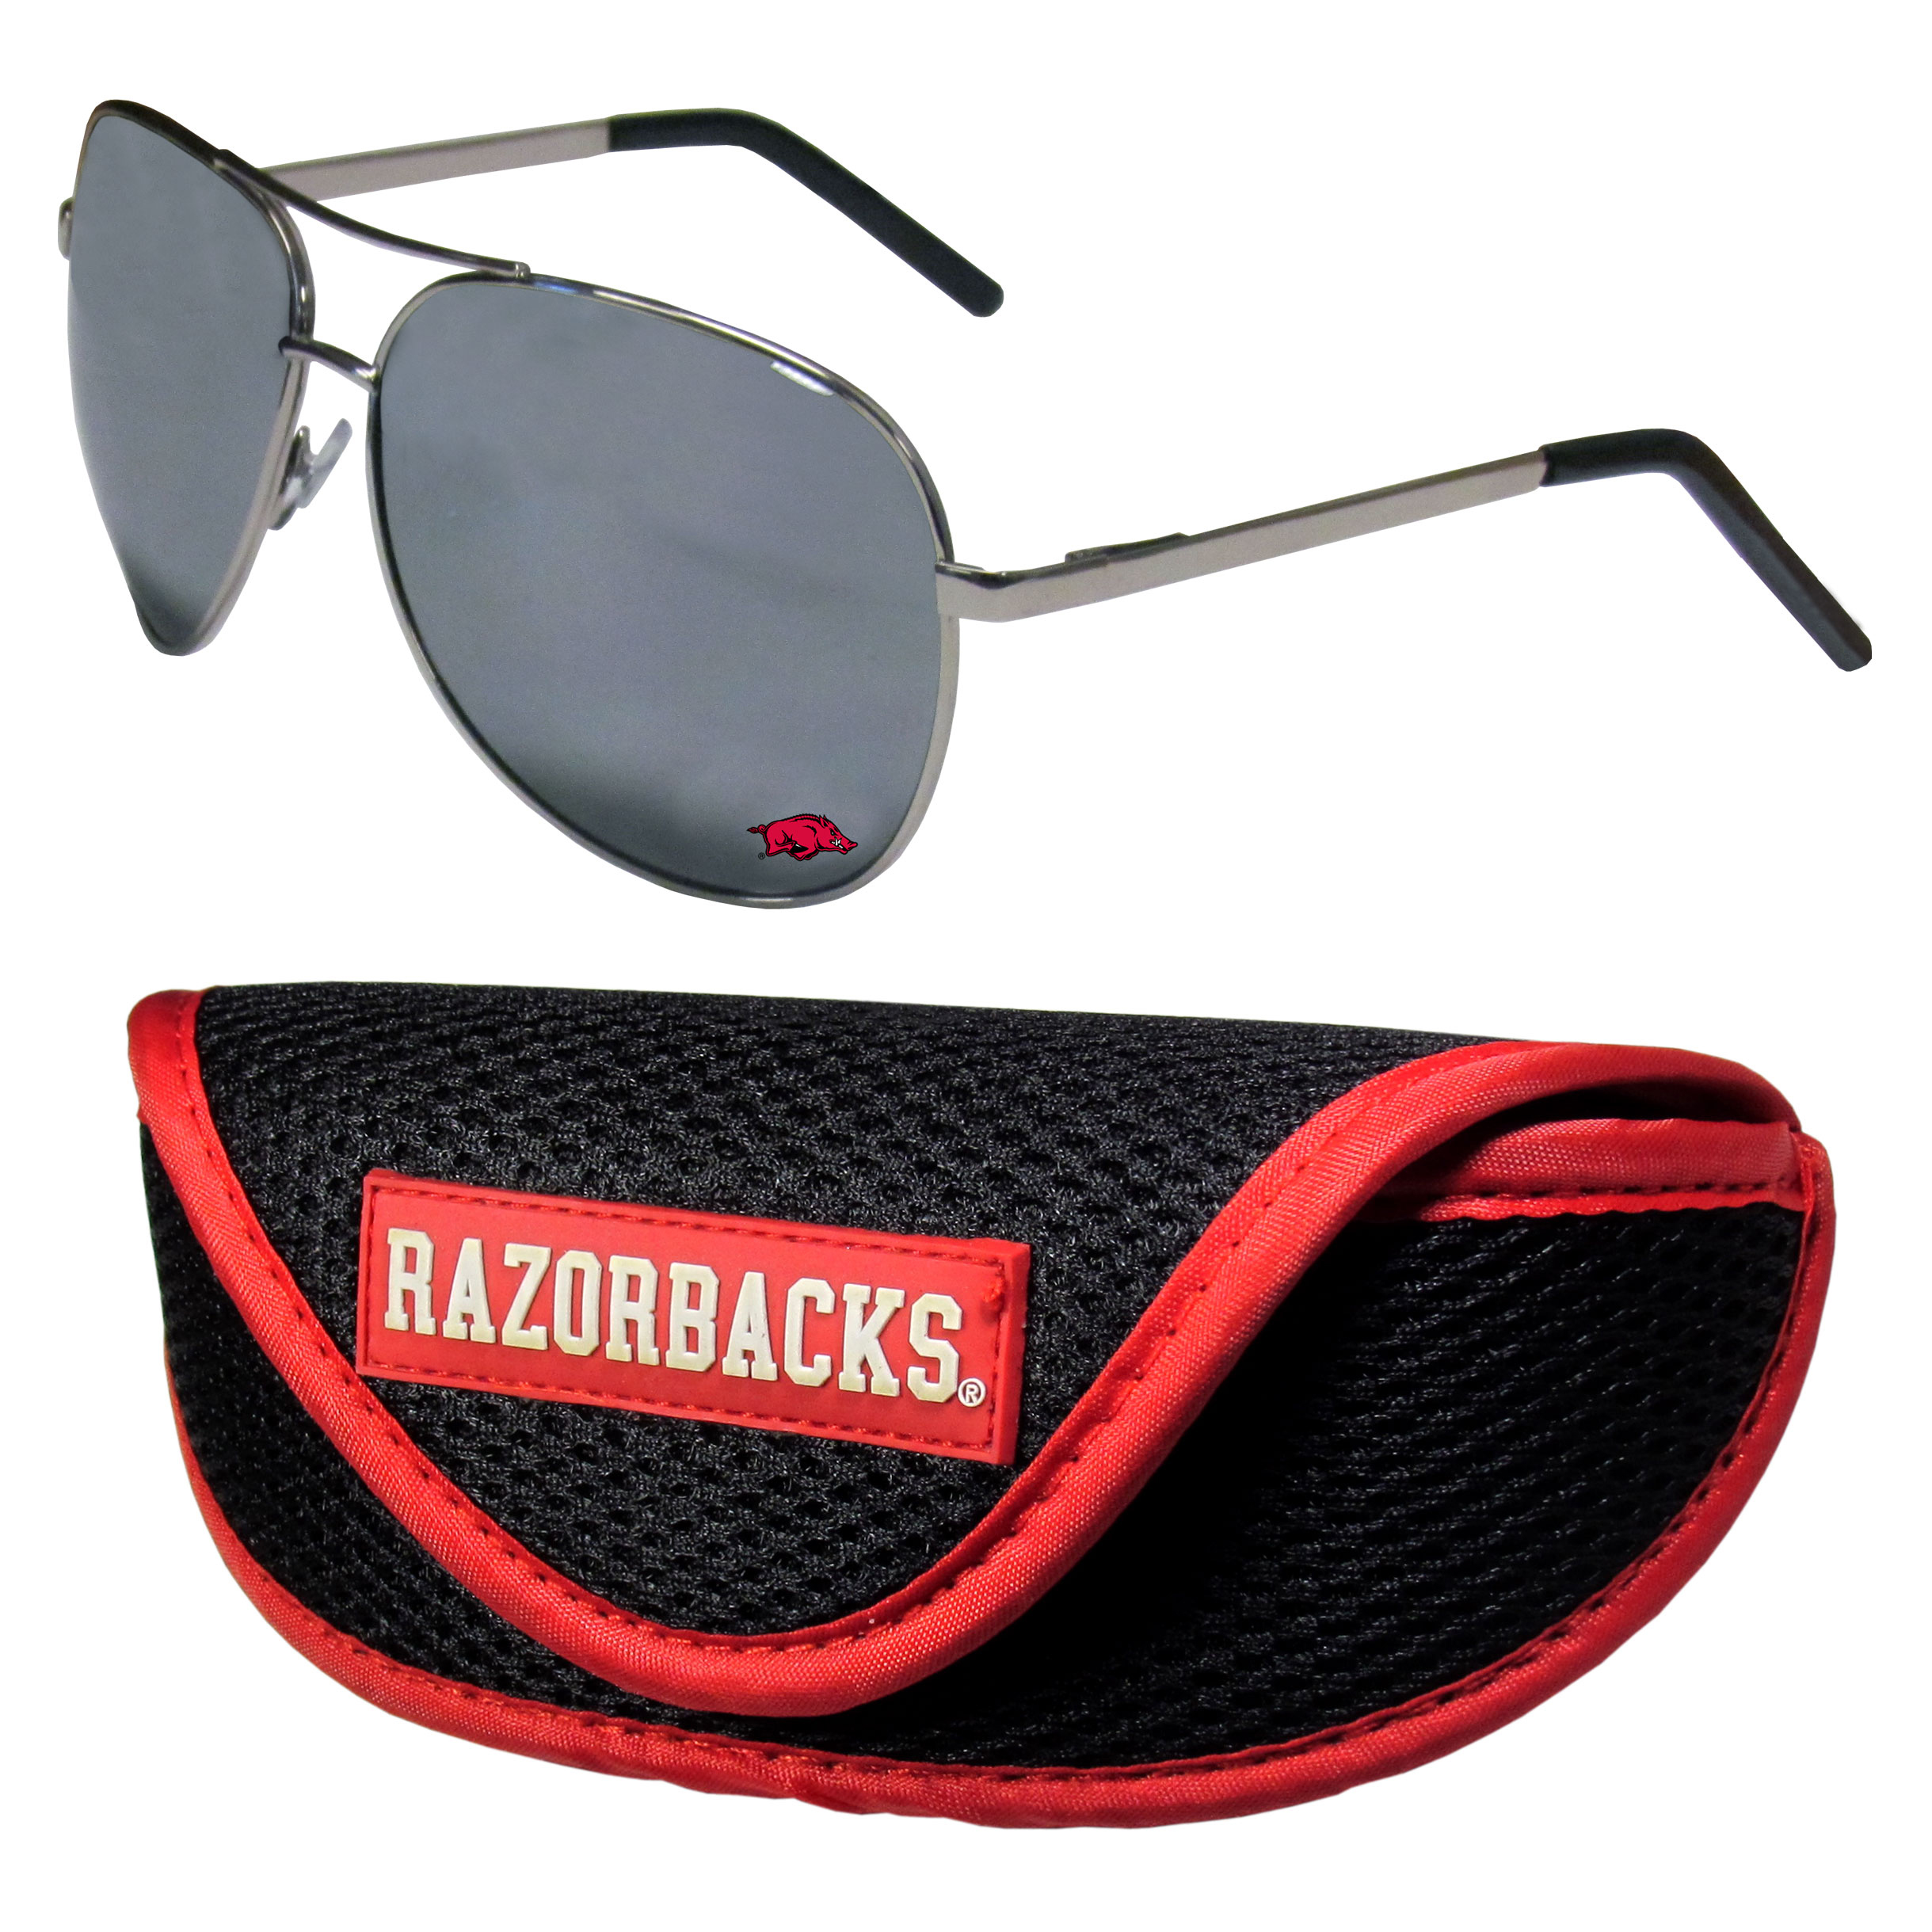 Arkansas Razorbacks Aviator Sunglasses and Sports Case - Aviator sunglasses are truly an iconic retro fashion statement that never goes out-of-style. Our Arkansas Razorbacks  aviator sunglasses pair this classic look with your love of the game. The iridium coated lenses reduce glare while driving, boating, golfing and their 100% UVA/UVB rating provides you with the maximum UV protection for all your outdoor activities. A millennial favorite, these affordable designer frames are the perfect eyewear accessory for a sports fan that is looking for high-quality at an affordable price. The durable, flex hinged frames are tough enough for hiking and camping or if you prefer sun bathing by the pool or on the beach these shades will really stand the test of time. The sunglasses come with a sporty case which has a large team logo on the lid that will make even the most die-hard fan proud!